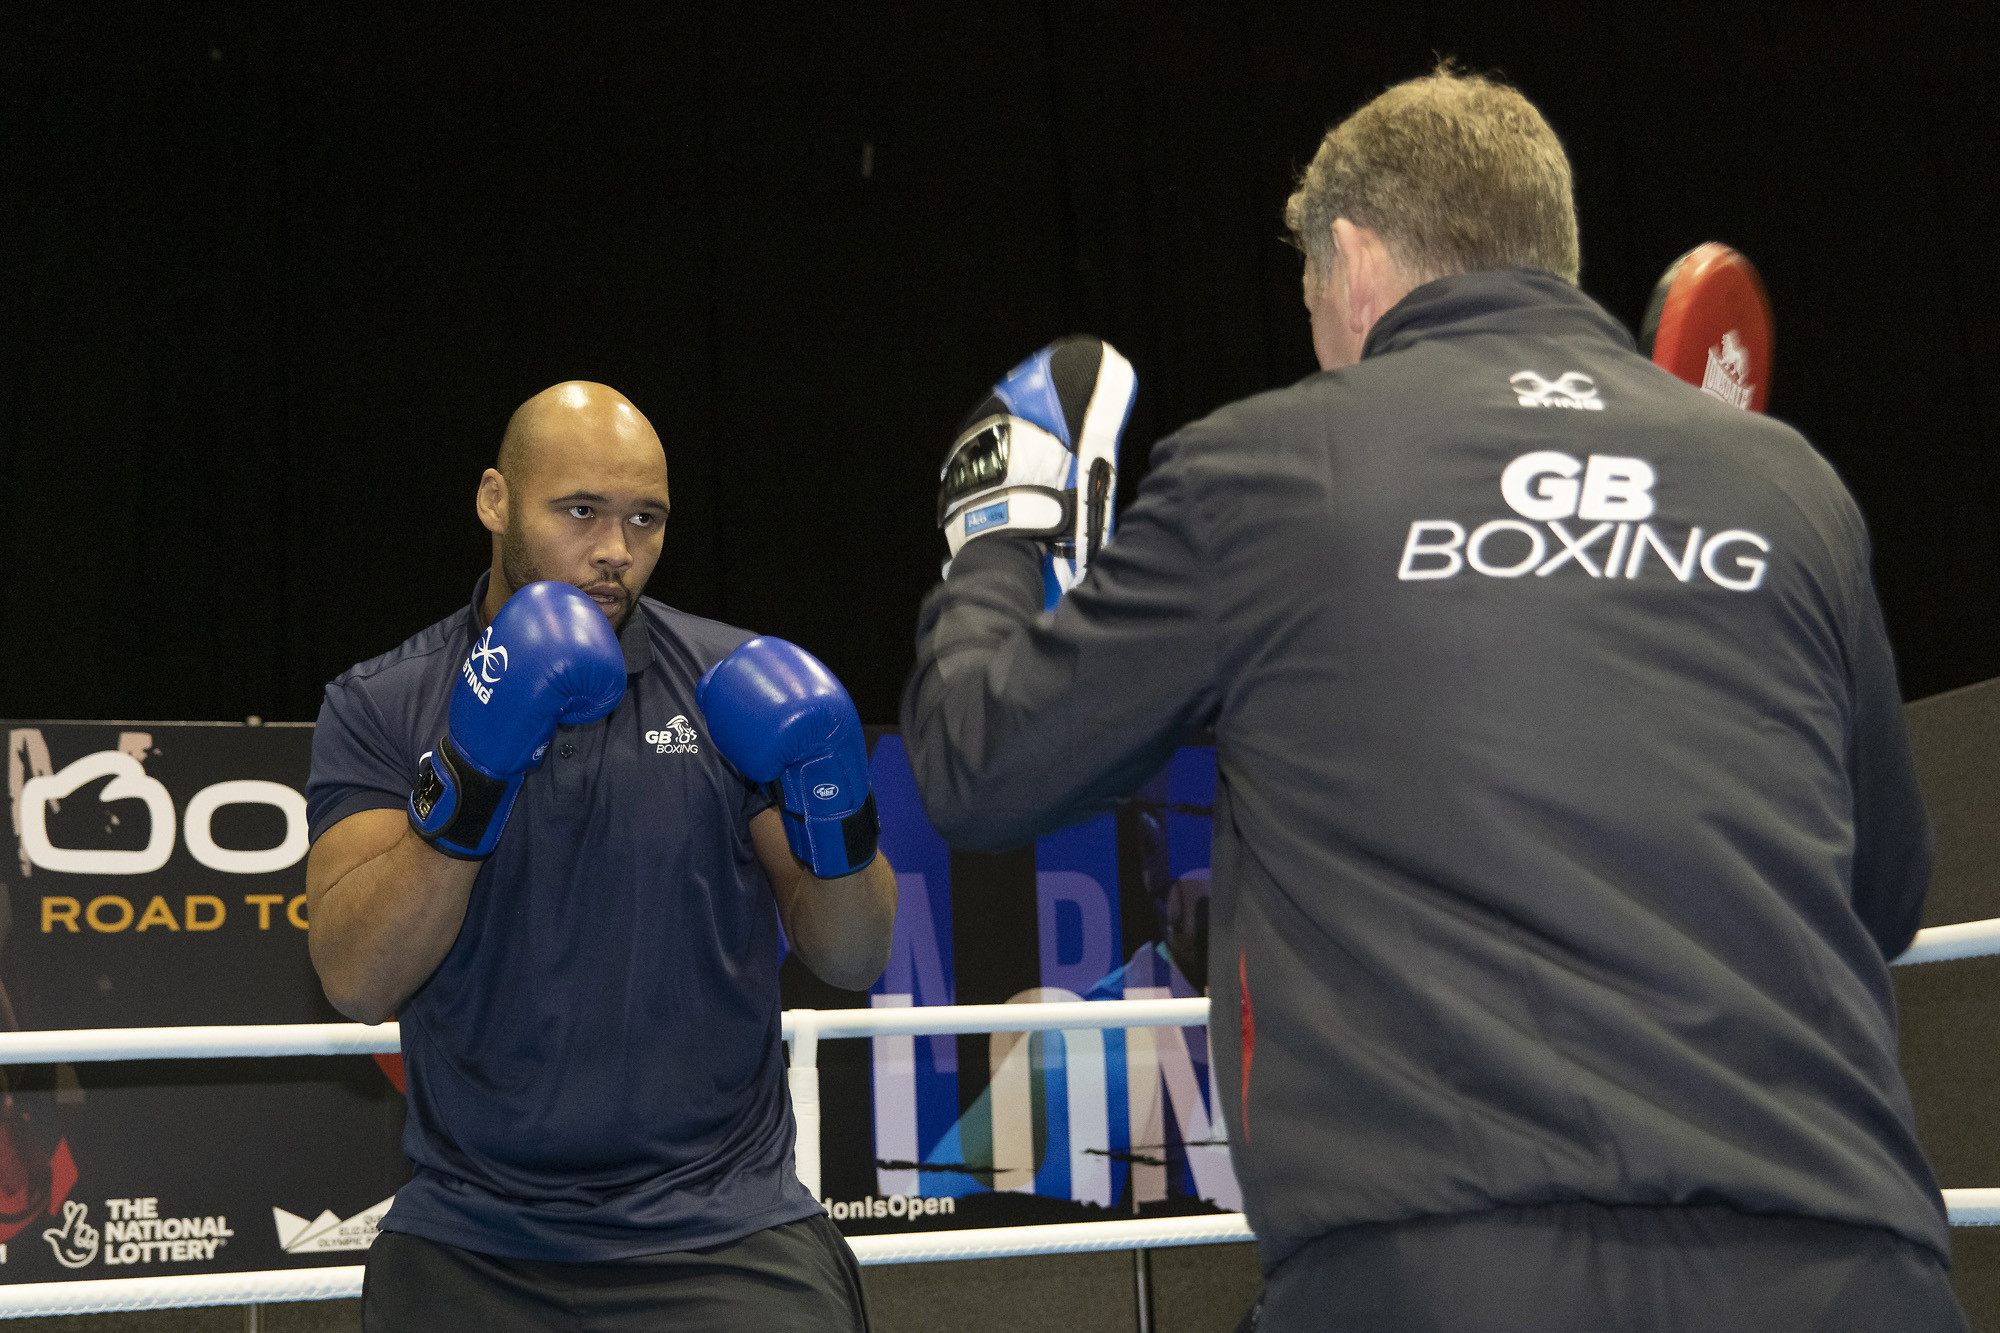 Boxers who are part of Britain's Olympic programme are returning to contact training this week ©GB Boxing